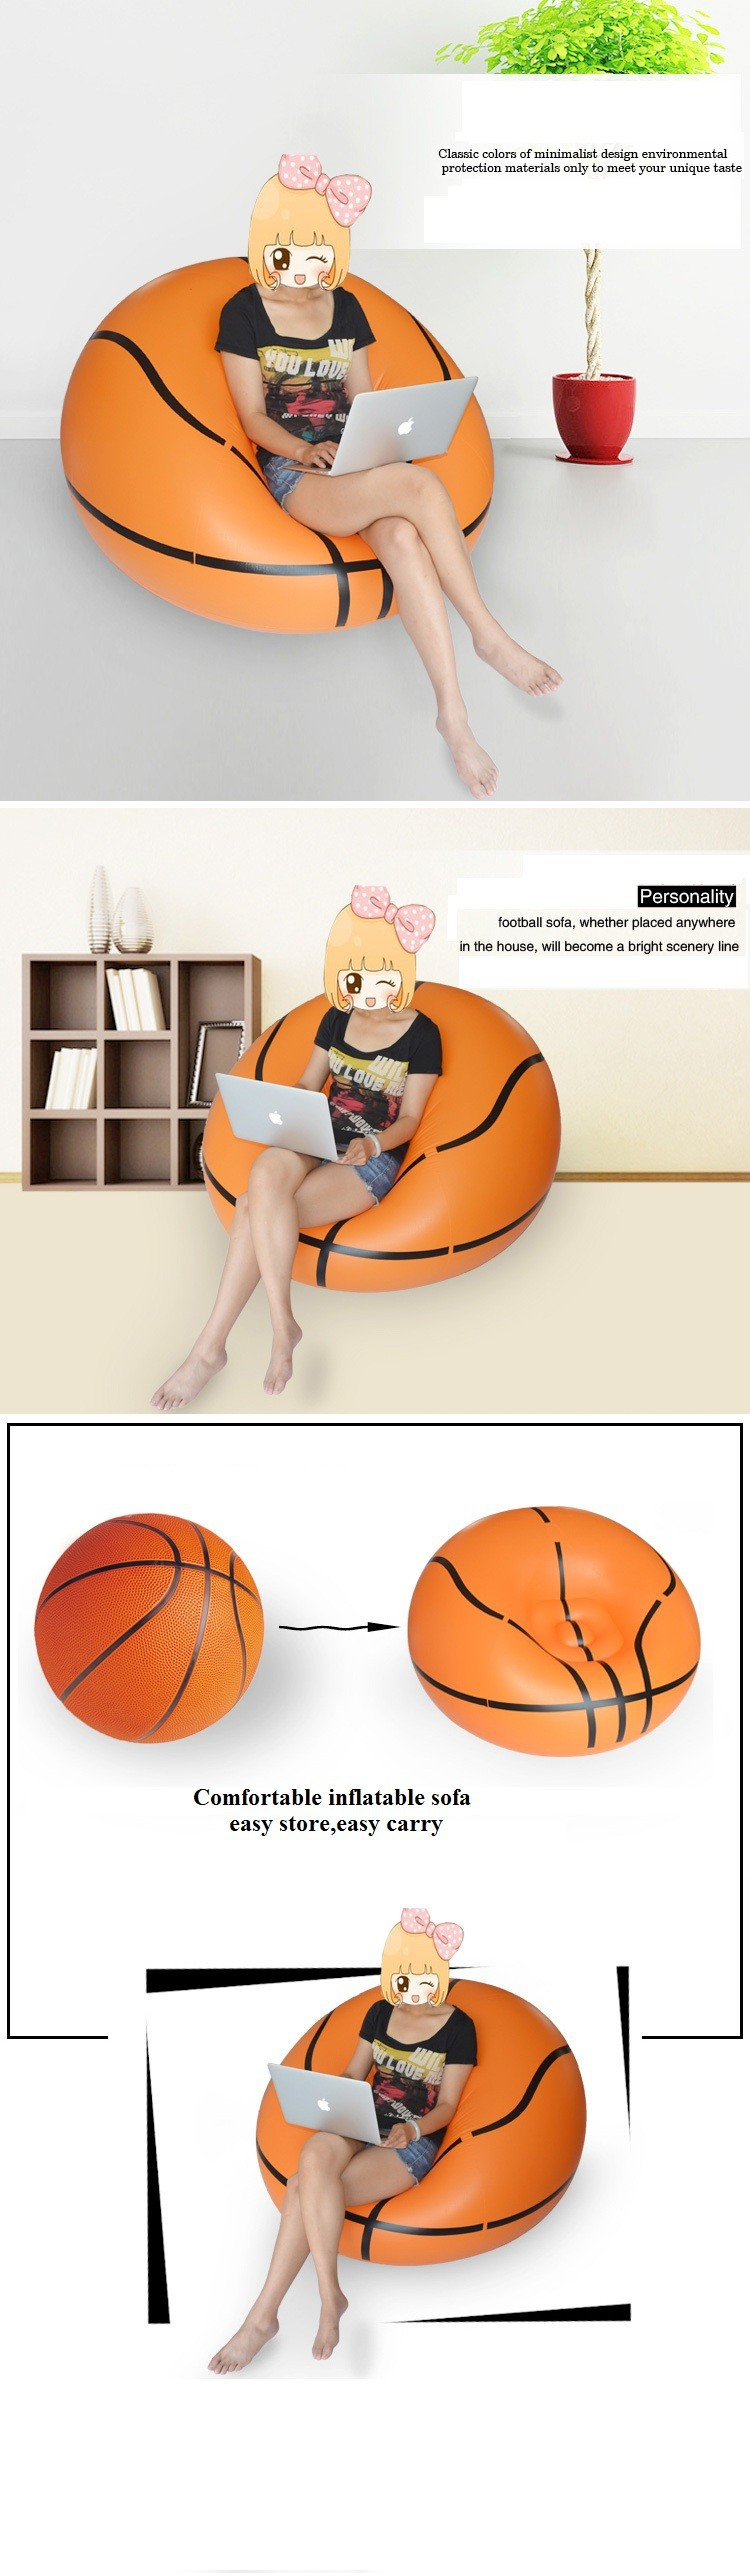 Basketball Chairs Us 62 2 Inflatable Sofa Bean Bag Sofa Basketball Sofa Living Room Furniture Lazy Sofa Home Furniture Bedroom Furniture Inflatable Stool In Living